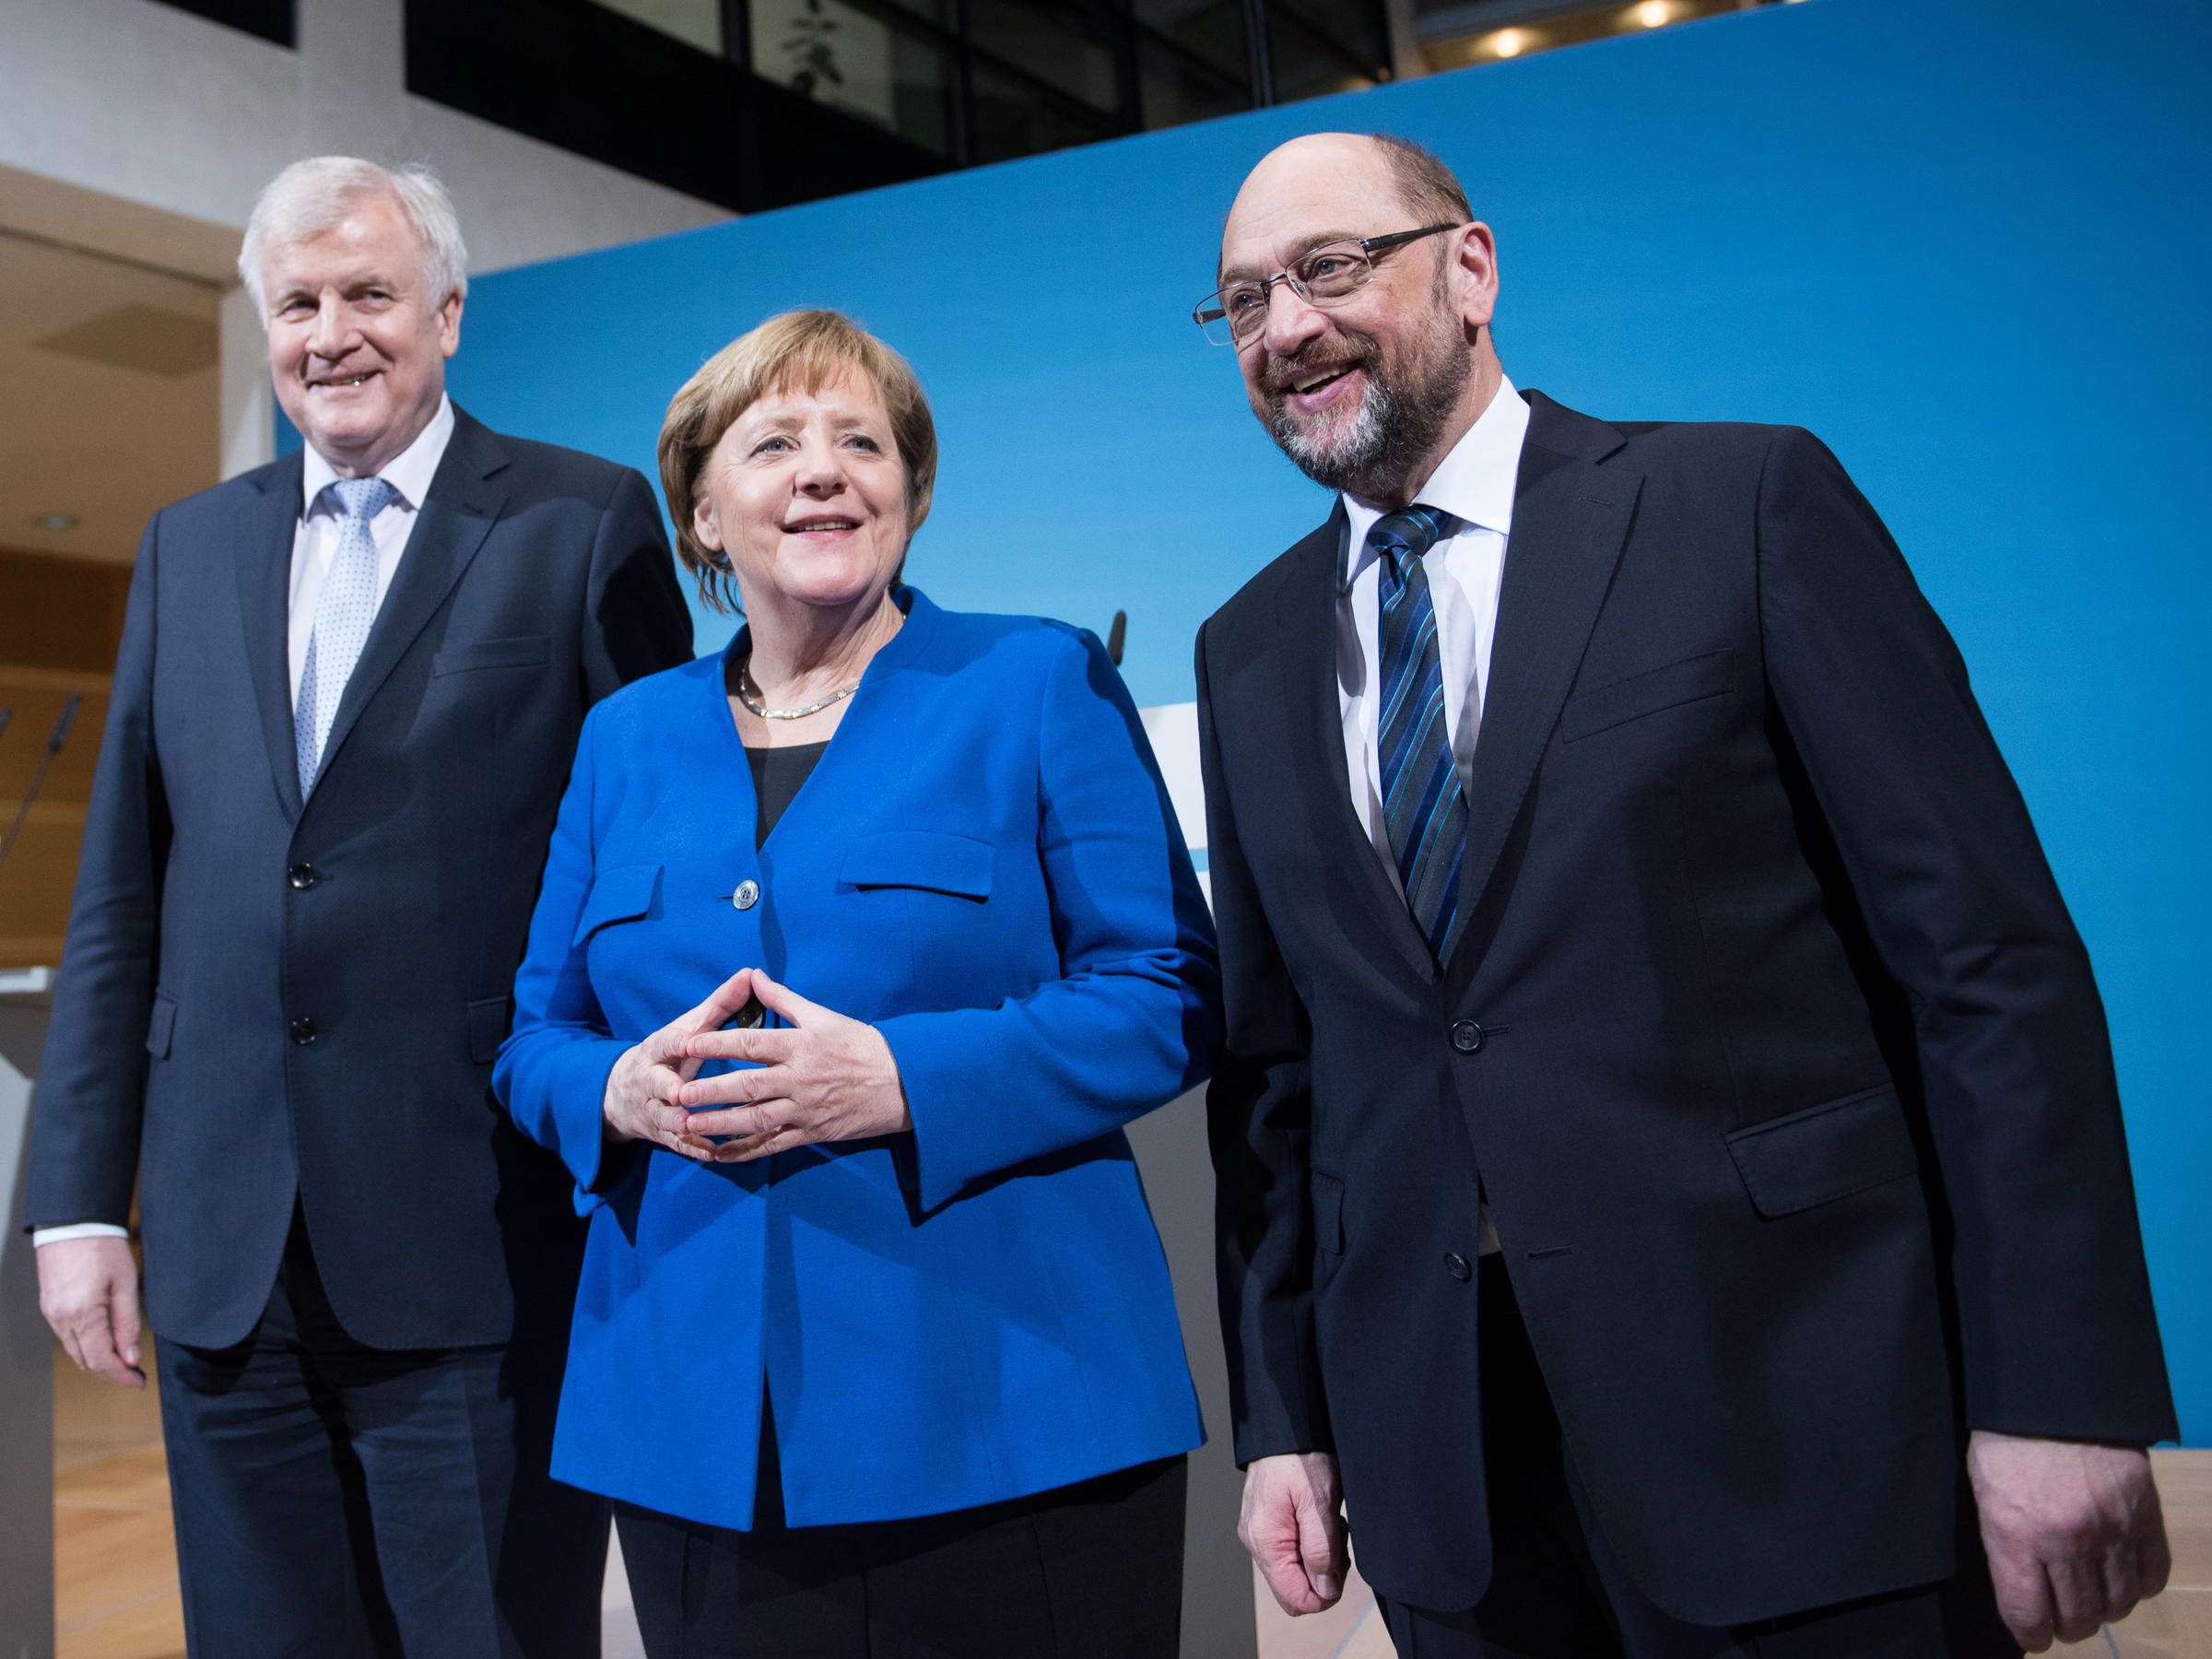 Angela Merkel's party, others strike coalition deal